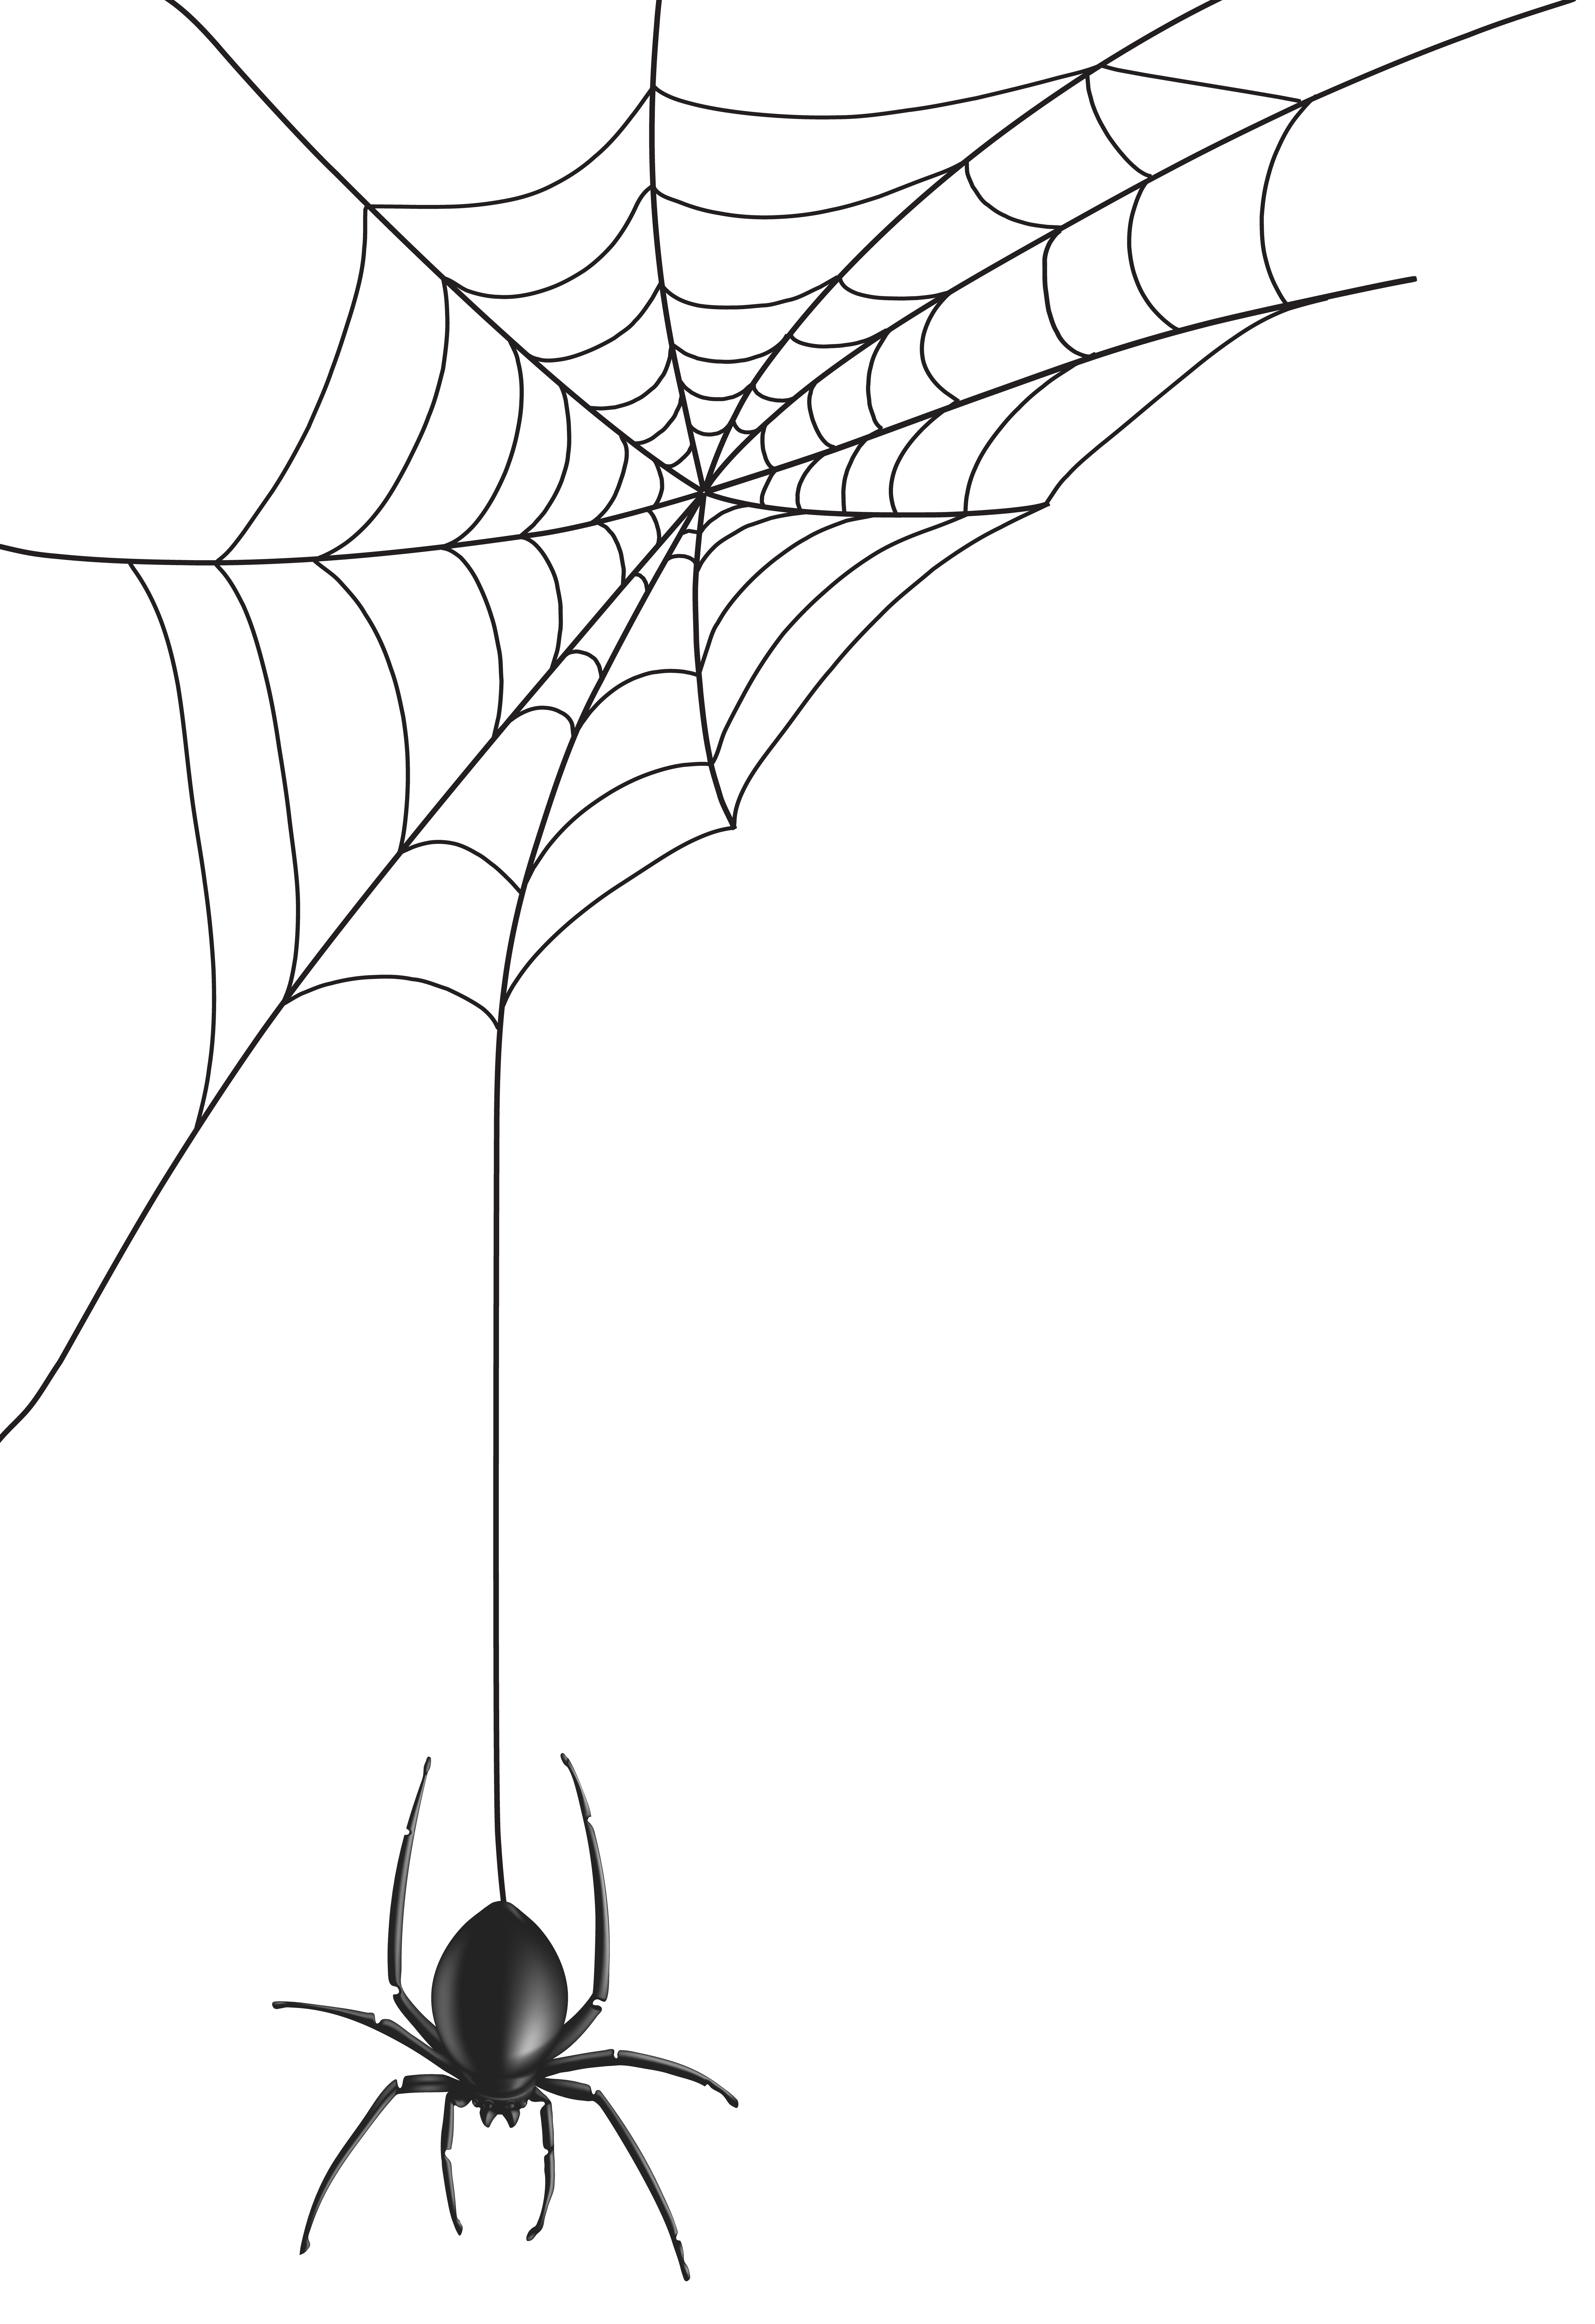 banner stock Spider web clipart. Png clip art image